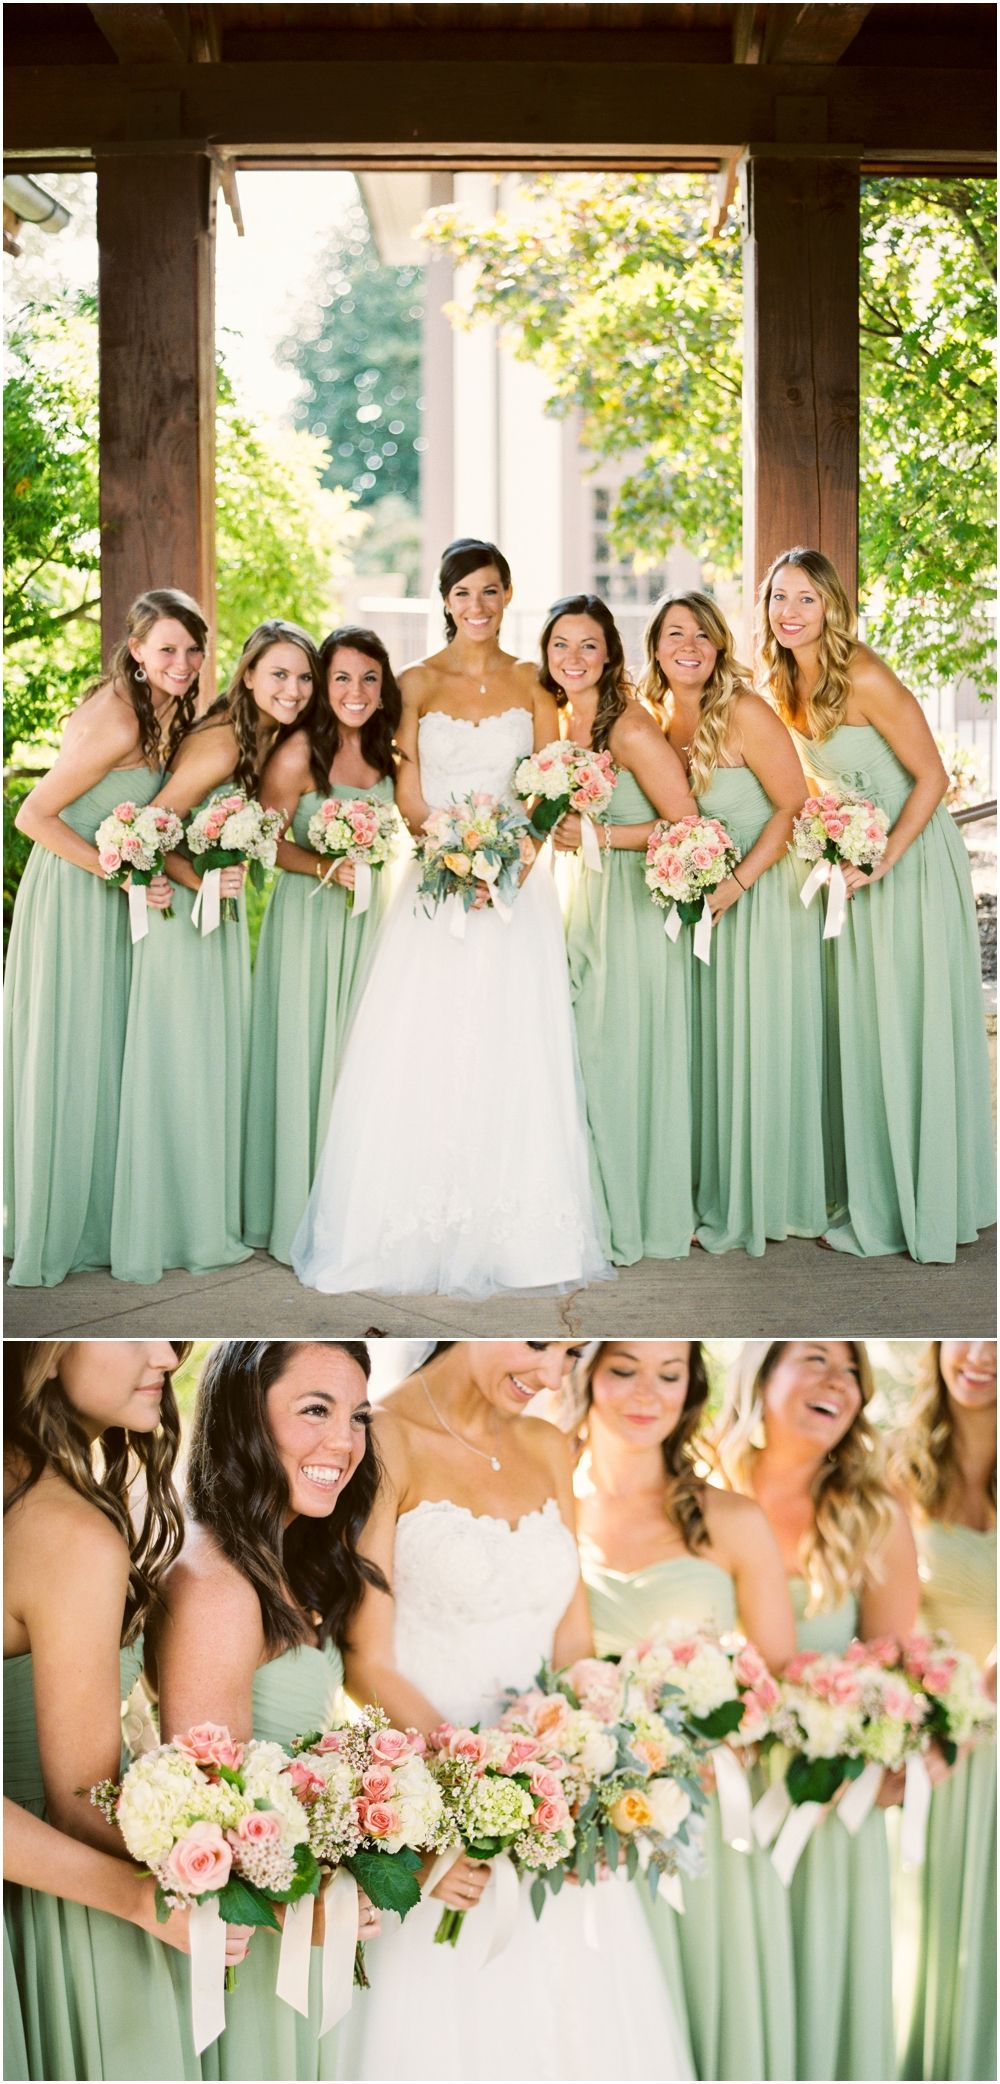 These Peach And Green Wedding Bouquets By Melissatimm Are Perfect Up Against The Mint Colored Bridesmaids Dresses